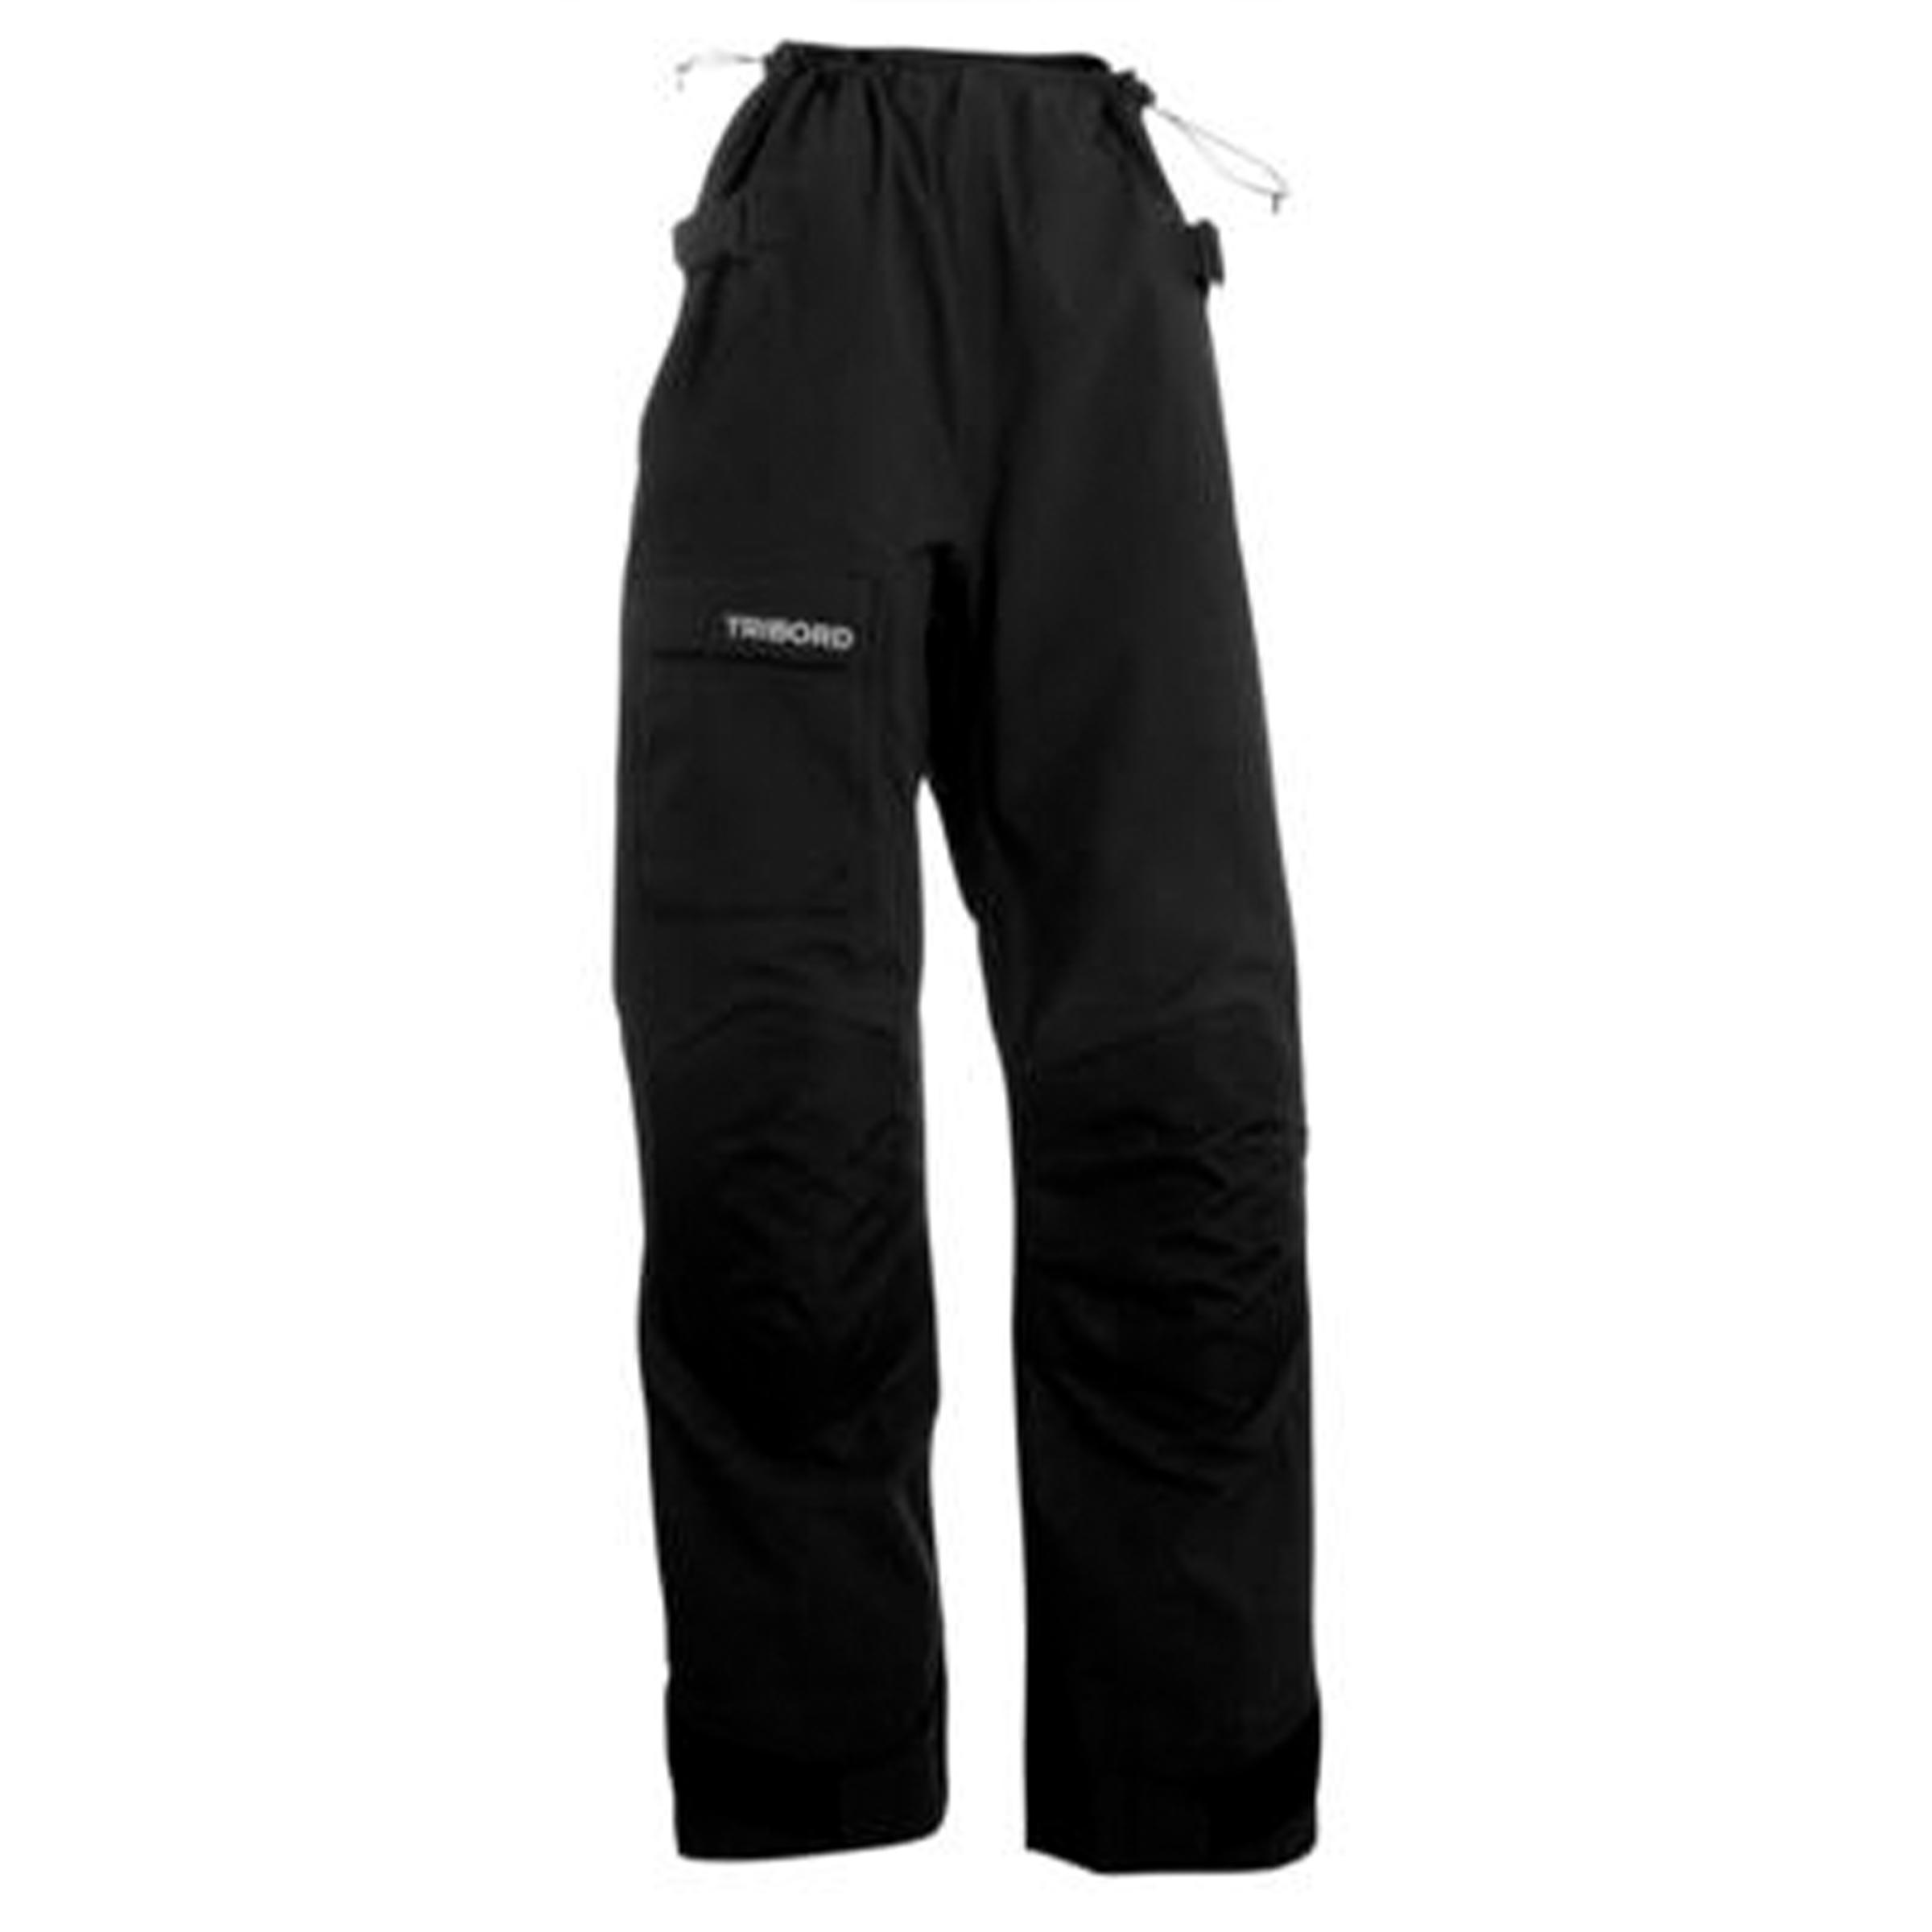 Surpantalon OFFSHORE 900 Damă imagine produs